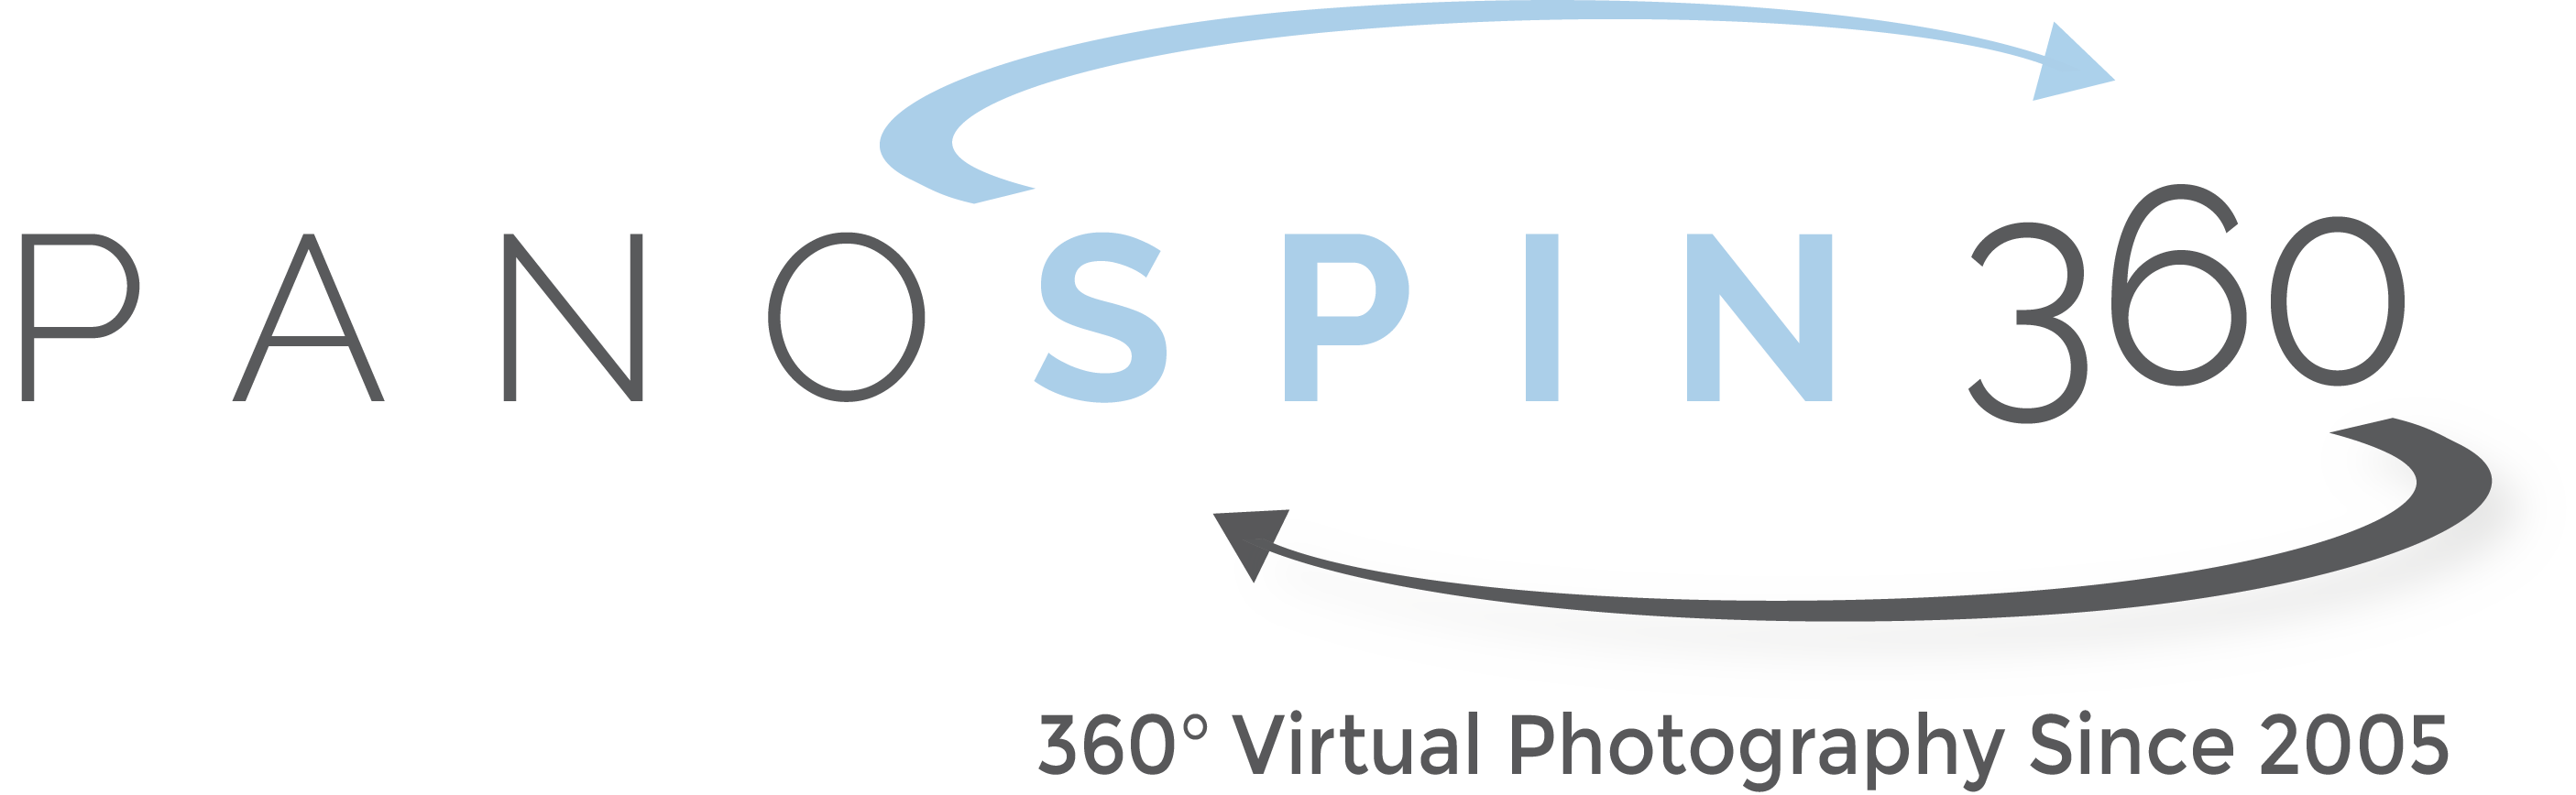 PANOSPIN360 | 360° Virtual Tour Photography